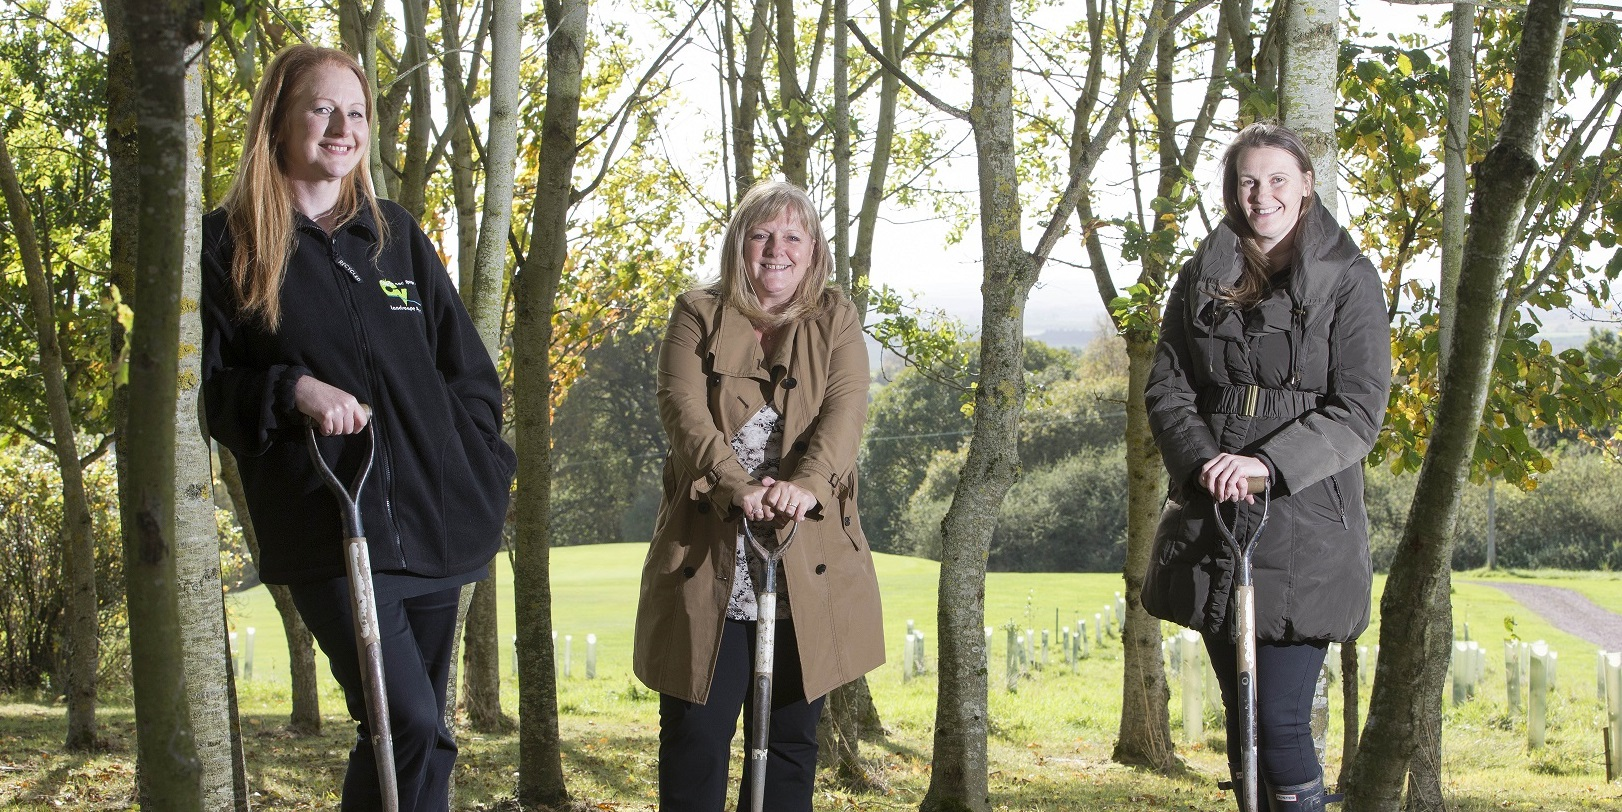 27 volunteers and six young people supported by Barnardos planted two hectares of new woodland at Carluke Golf Course in 2014, funded by UK Steel Enterprise, South Lanarkshire LEADER and managed by Central Scotland Green Network Trust and Artscape